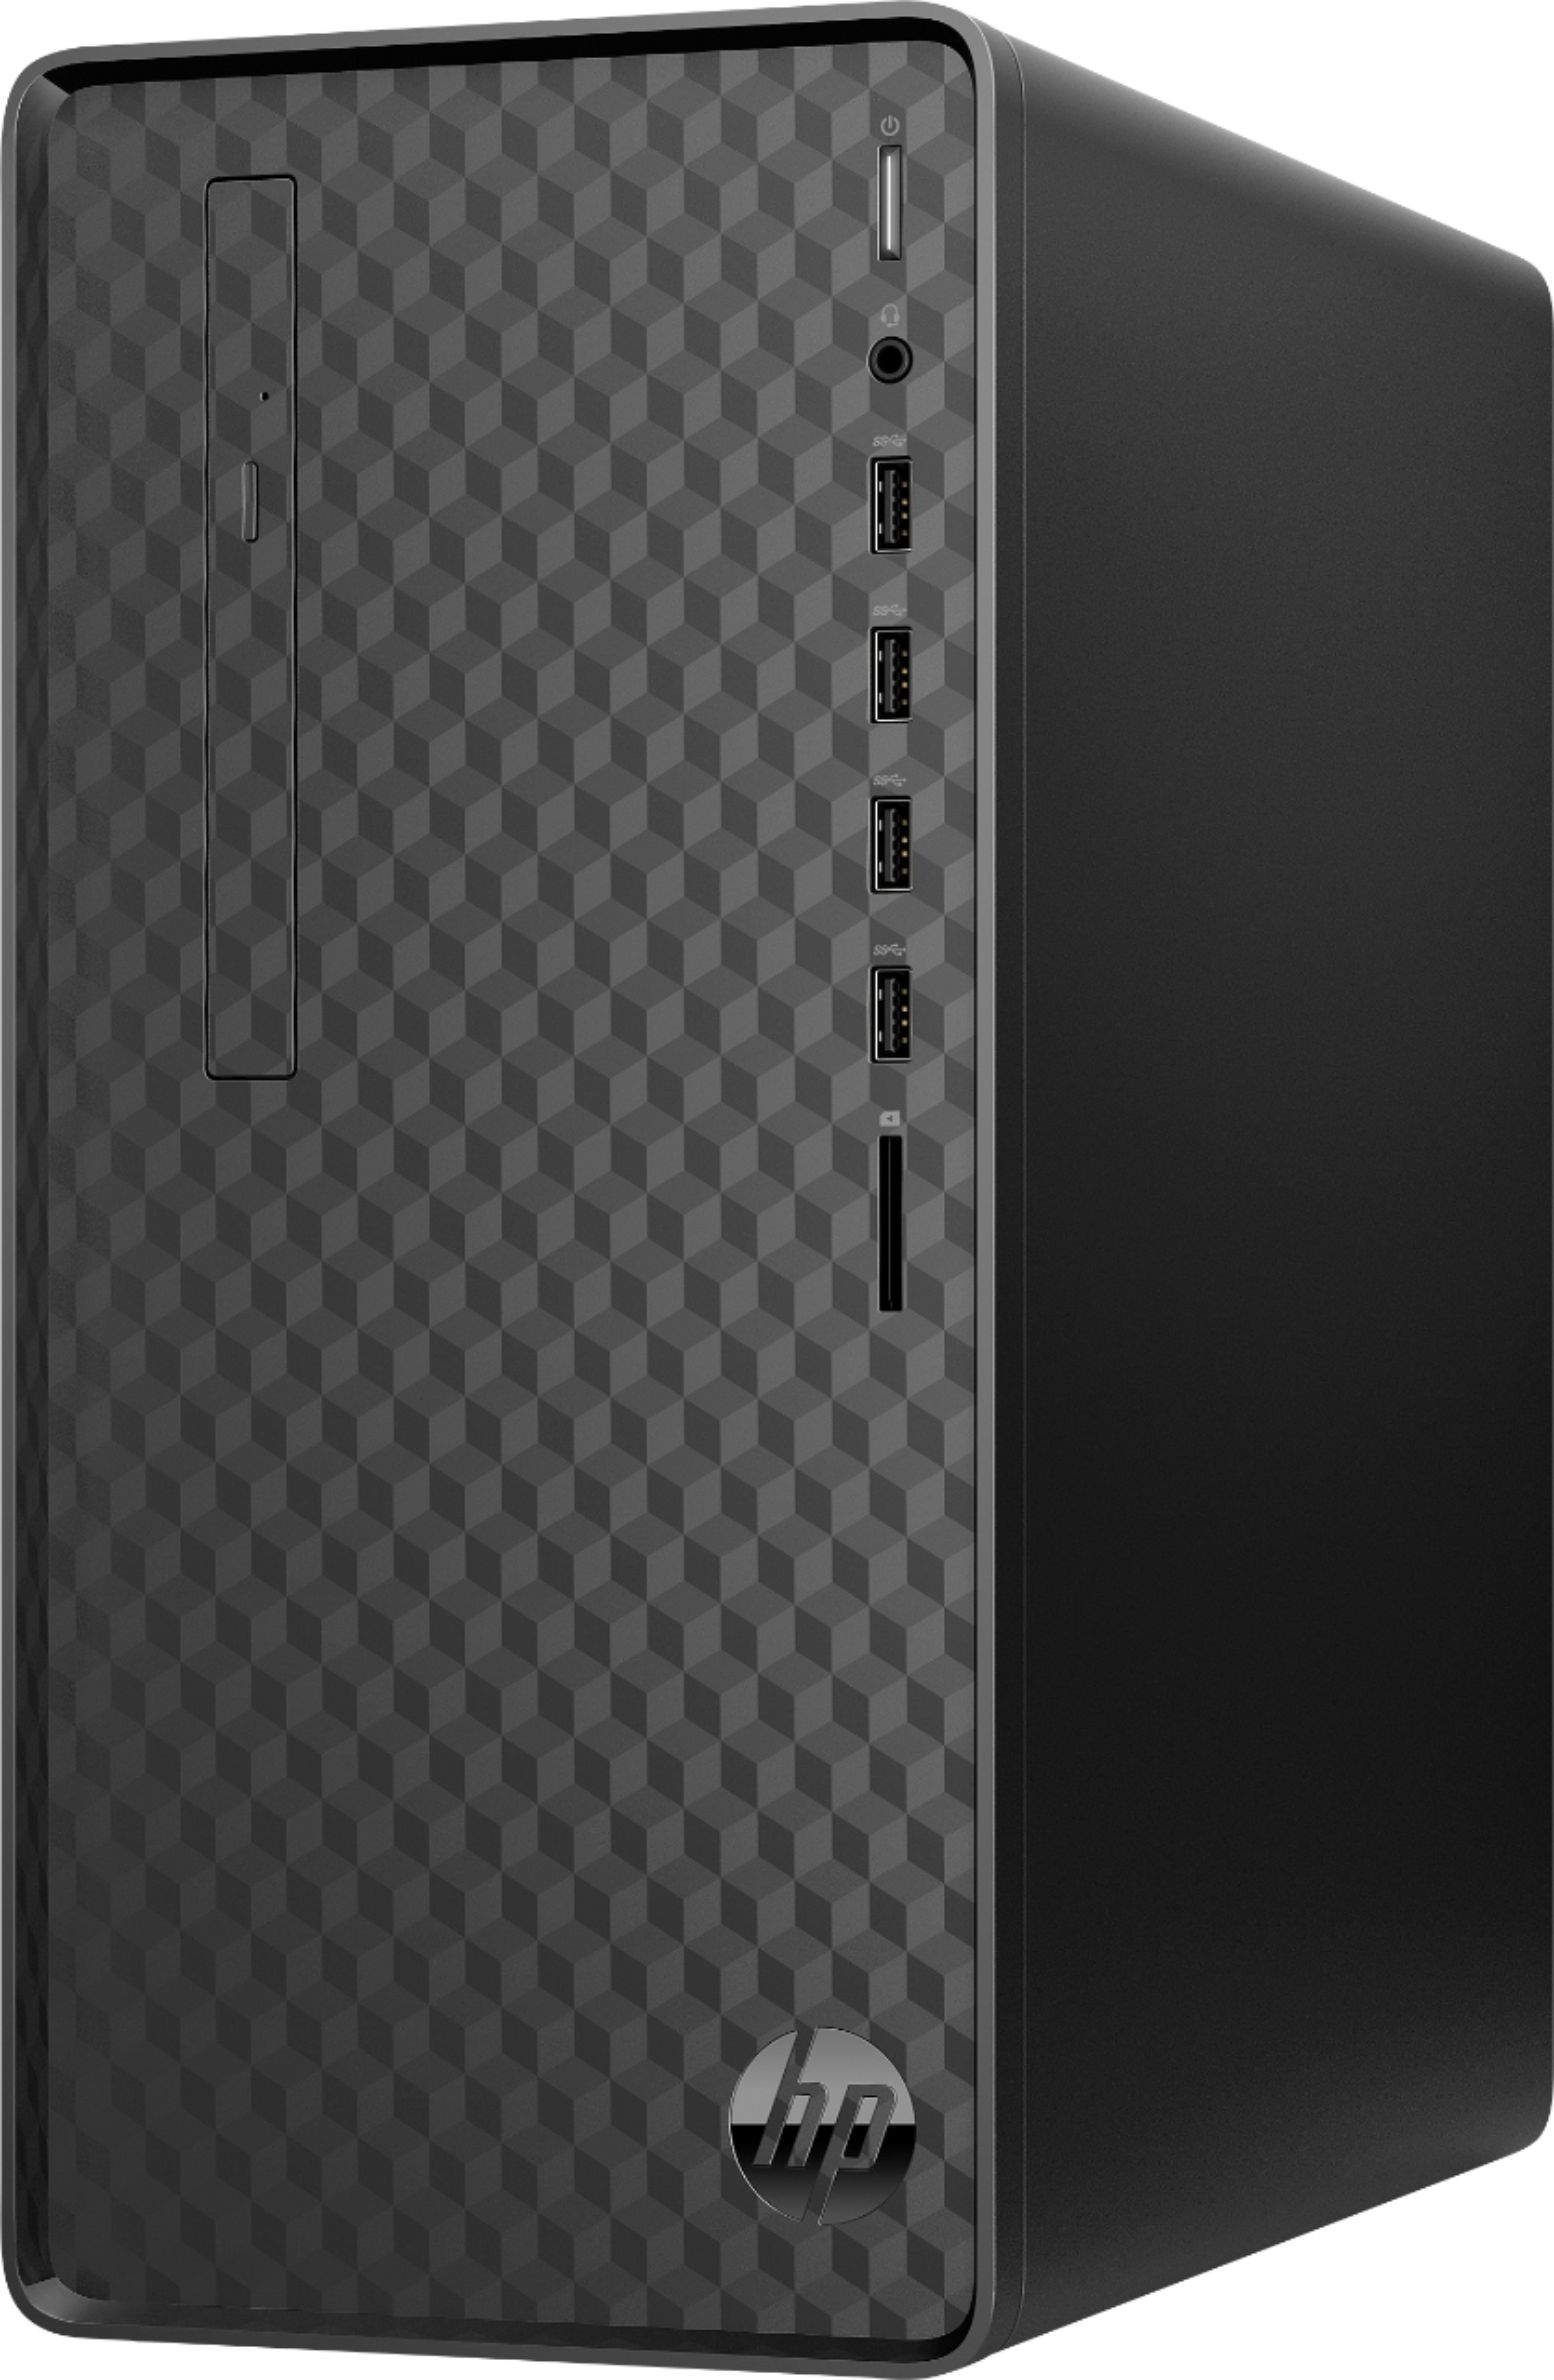 Angle Zoom. HP - Desktop - AMD Ryzen 3-Series - 8GB Memory - 256GB Solid State Drive - Jet Black.